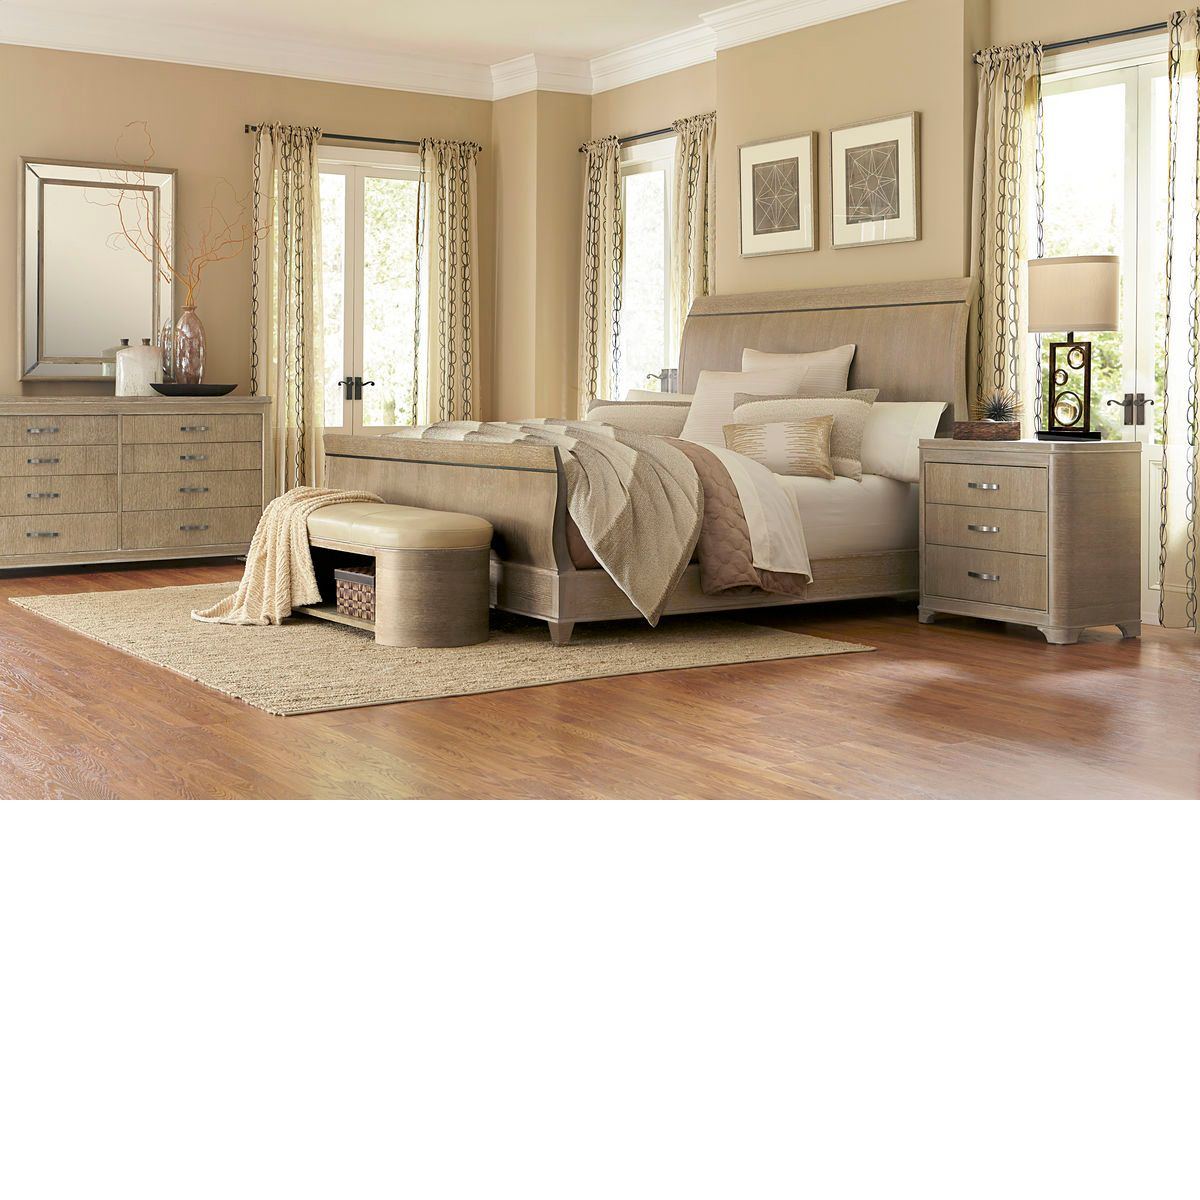 Bedroom Sets The Dump the dump furniture - greenpoint sandstone sleigh | bedroom